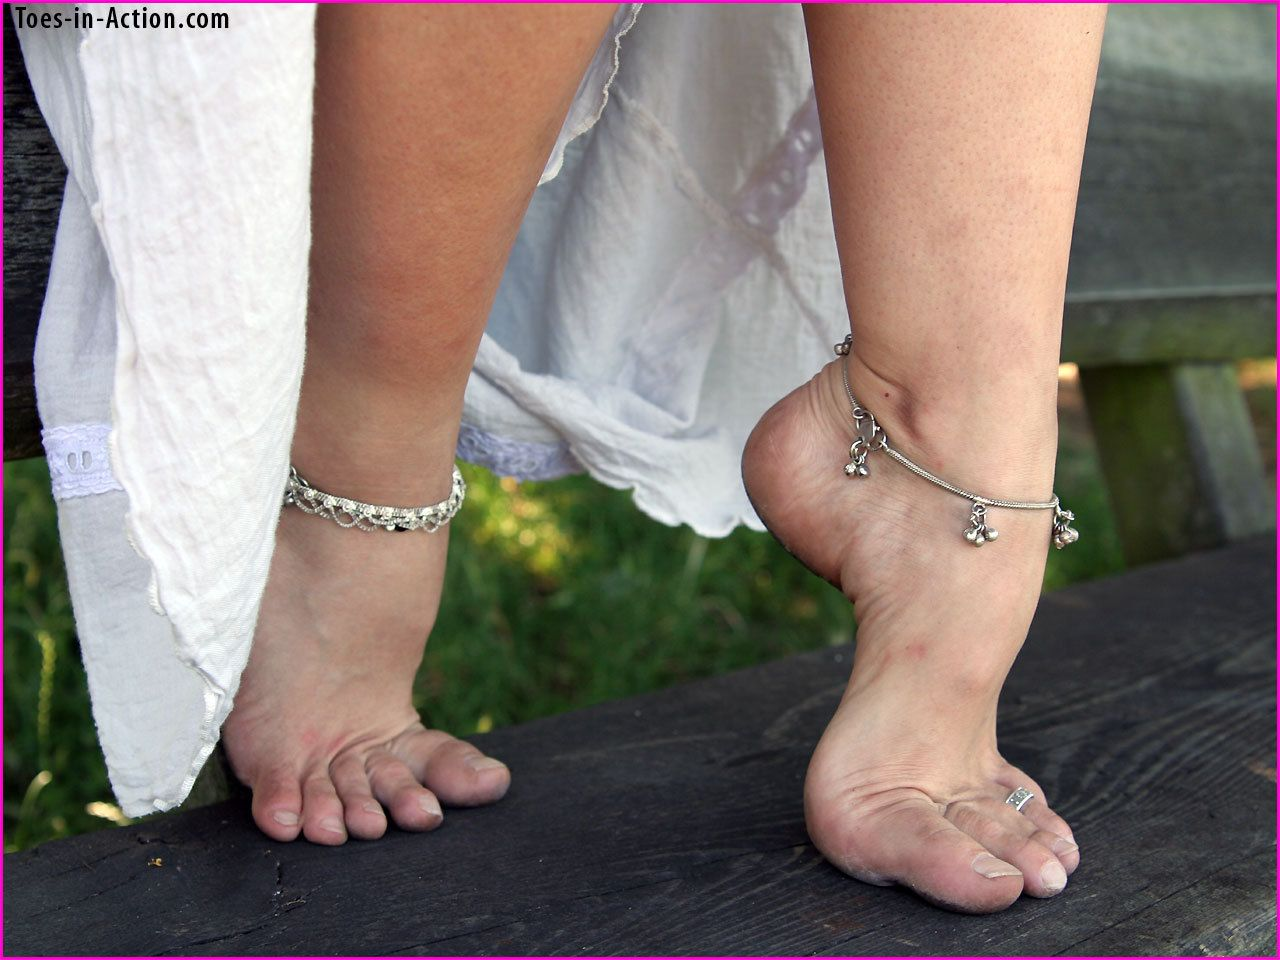 Sexy High Arched Feet photo 7